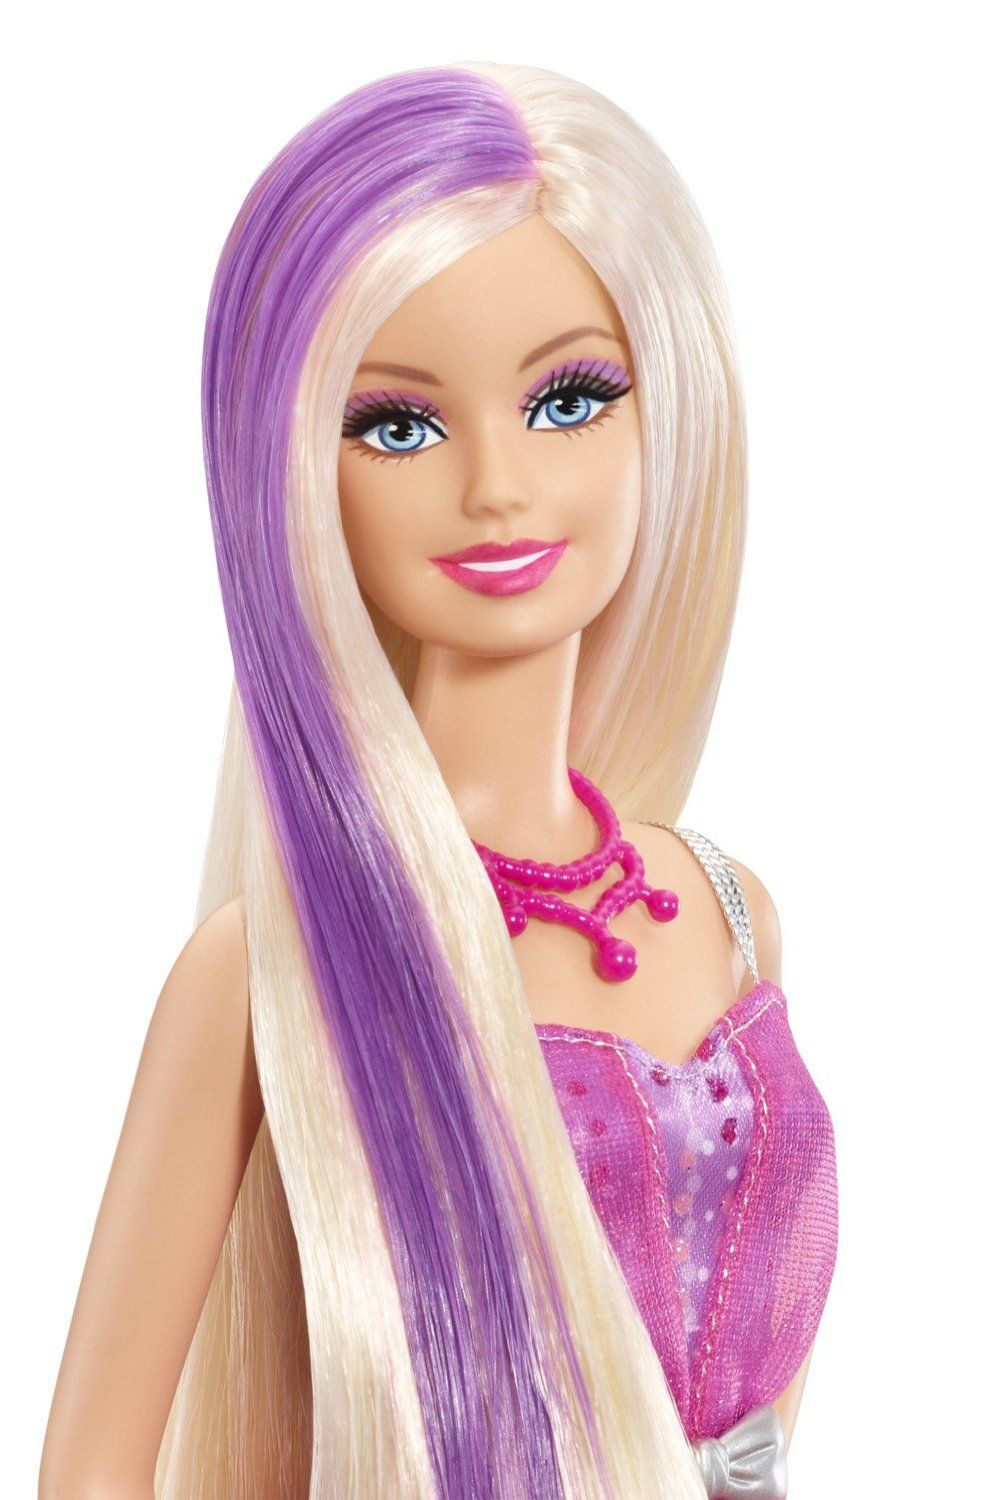 Barbie   Barbie Girl  Pinterest  Mattel Barbie y Juguetes